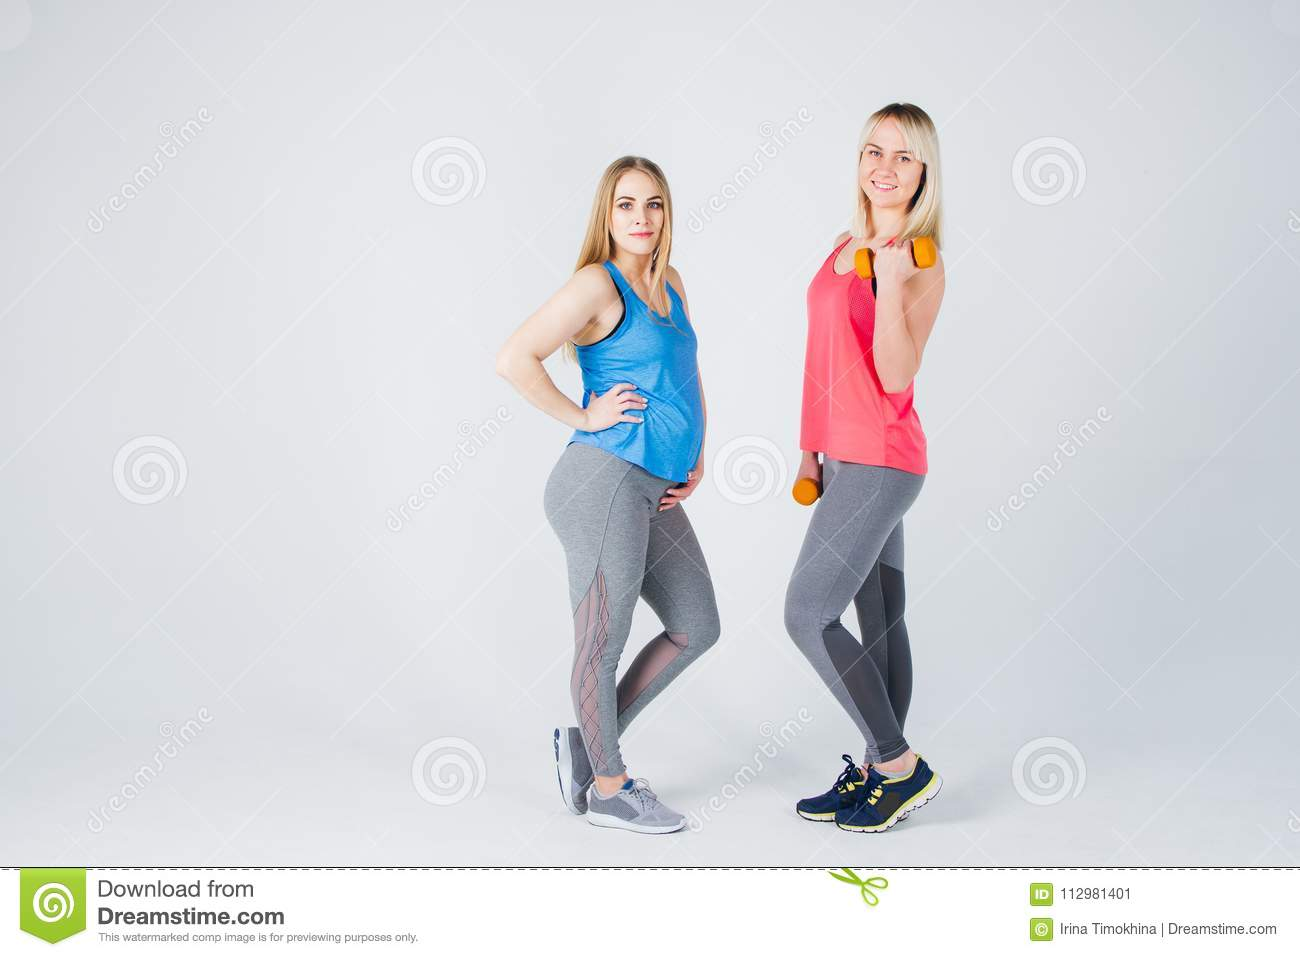 Pregnant girl and her friend are engaged in fitness